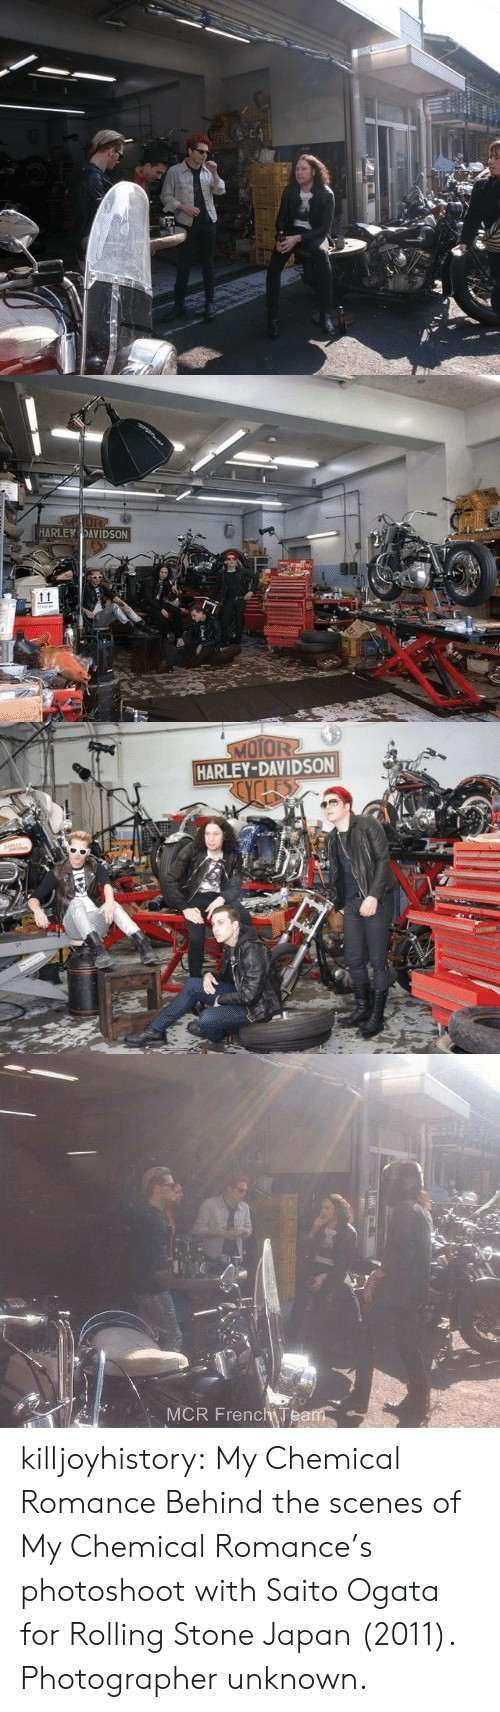 Tumblr, Blog, and Japan: MOR  HARLEY DAVIDSON   MOTOR2  HARLEY-DAVIDSON  os   MCR FrenchTeam killjoyhistory:  My Chemical Romance Behind the scenes of My Chemical Romance's photoshoot with Saito Ogata for Rolling Stone Japan (2011). Photographer unknown.